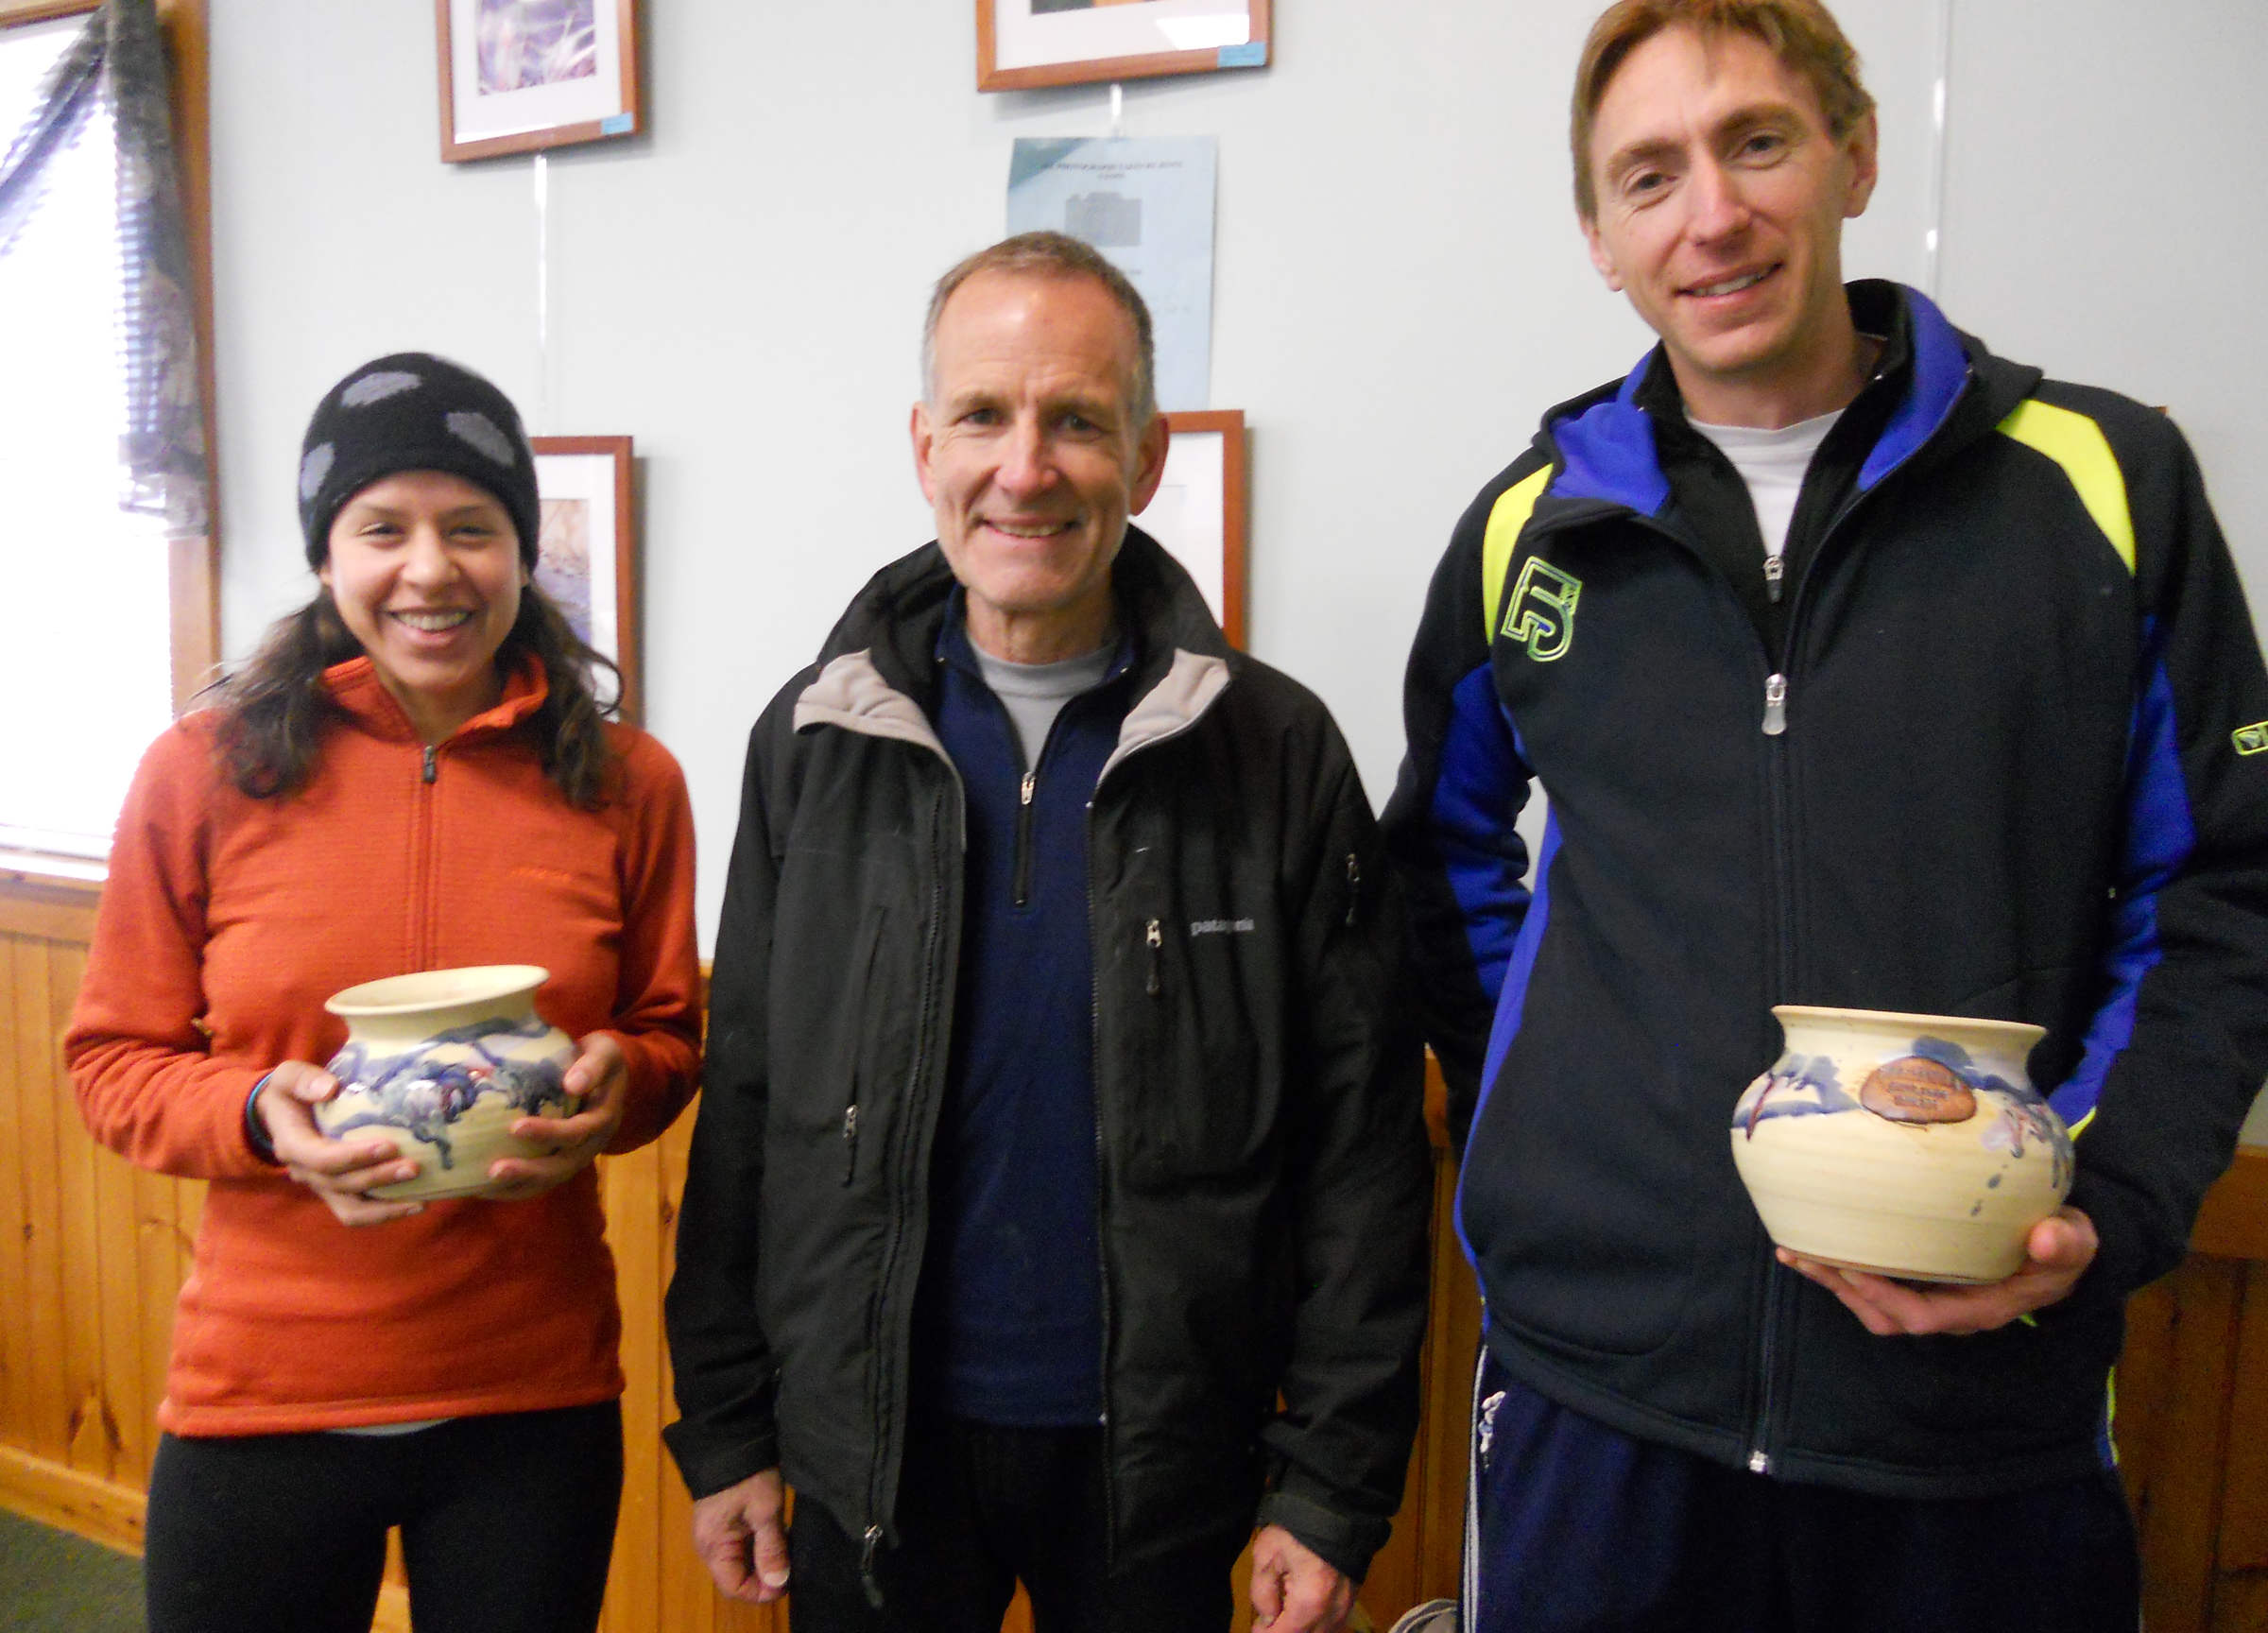 RD Alan Gowen with winners Gaby Gorman and Olivier Leblond